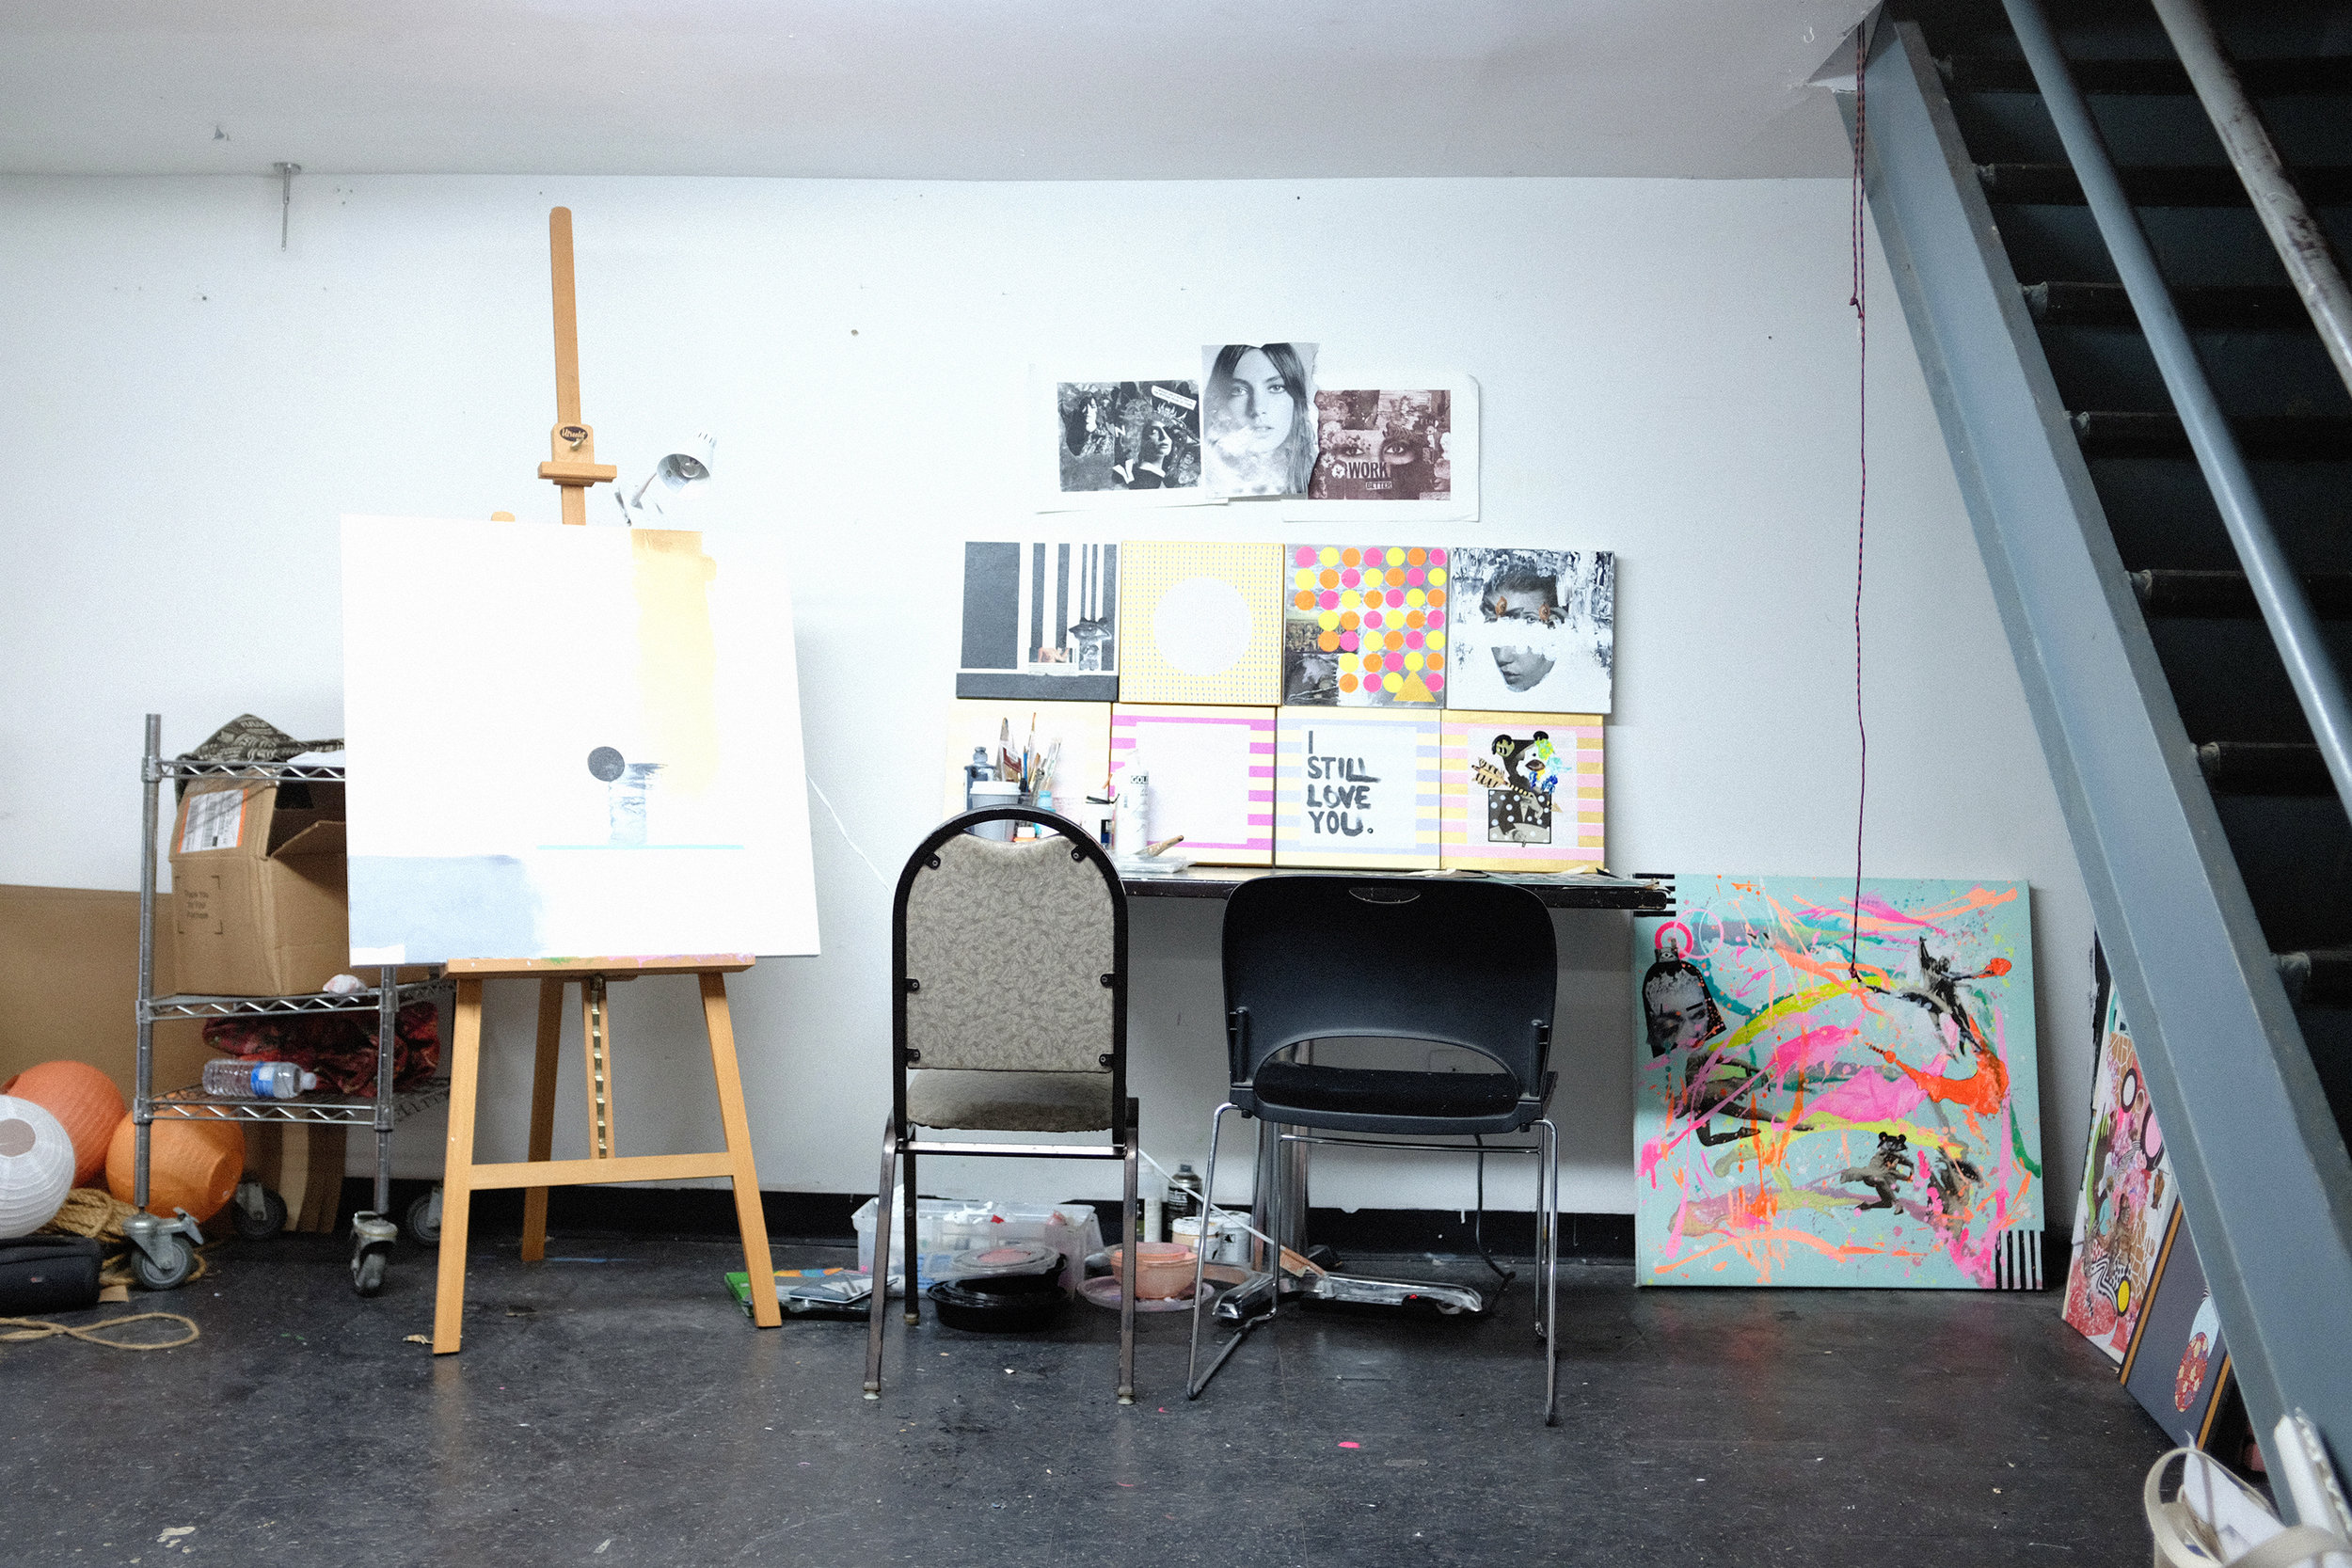 Studio space avaliable for under represented artist residents